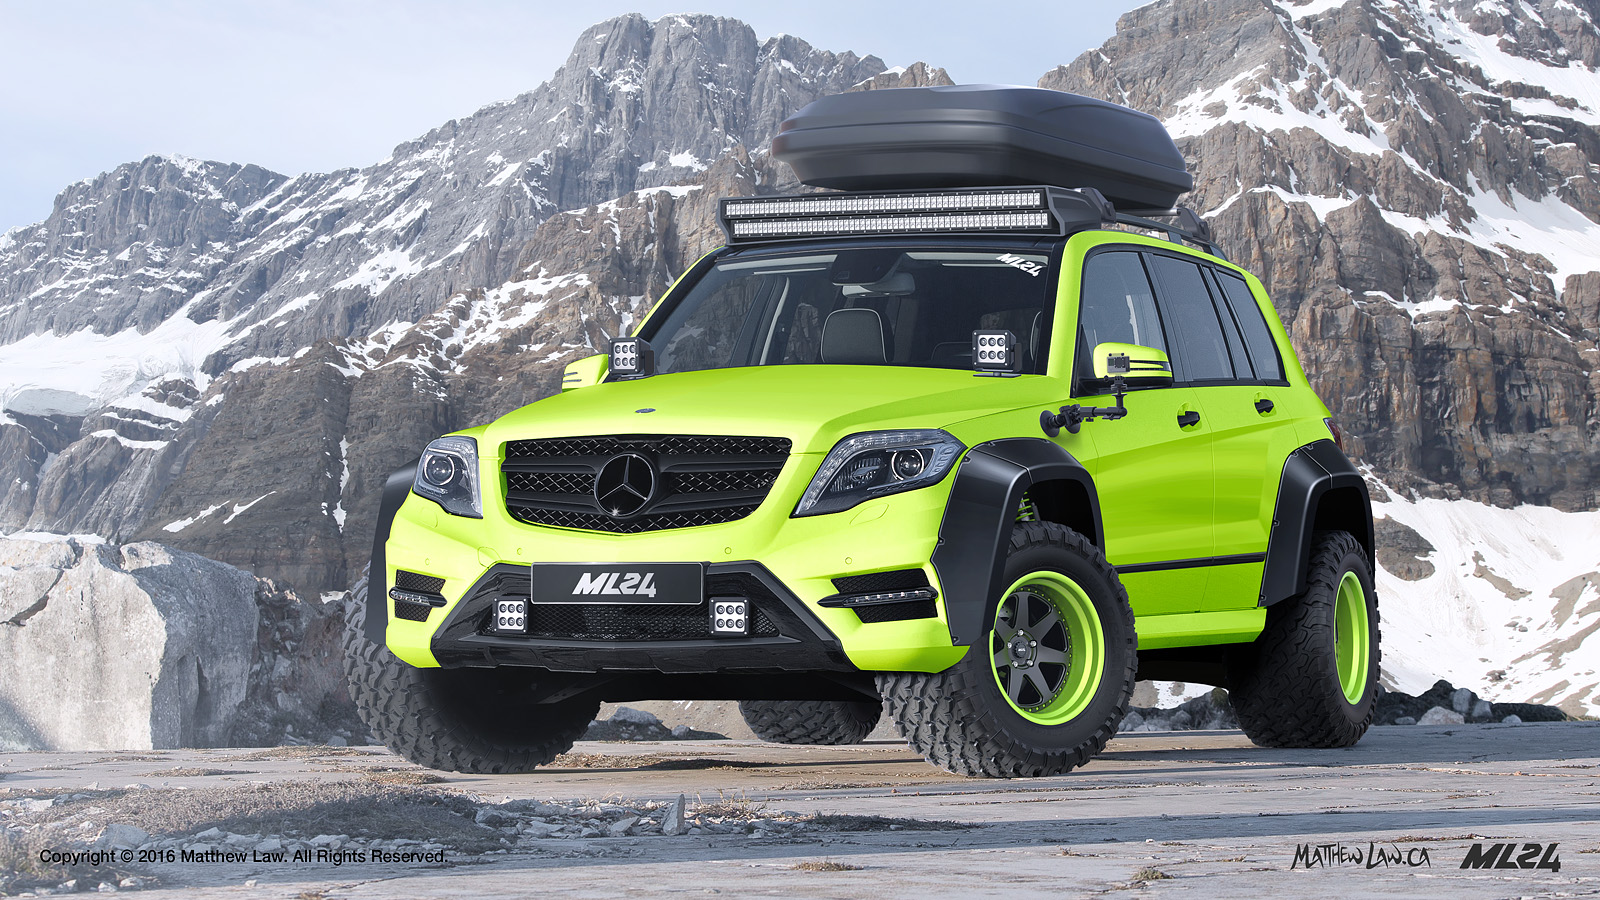 Ml24 automotive design prototyping and body kits 2012 for Mercedes benz glk amg